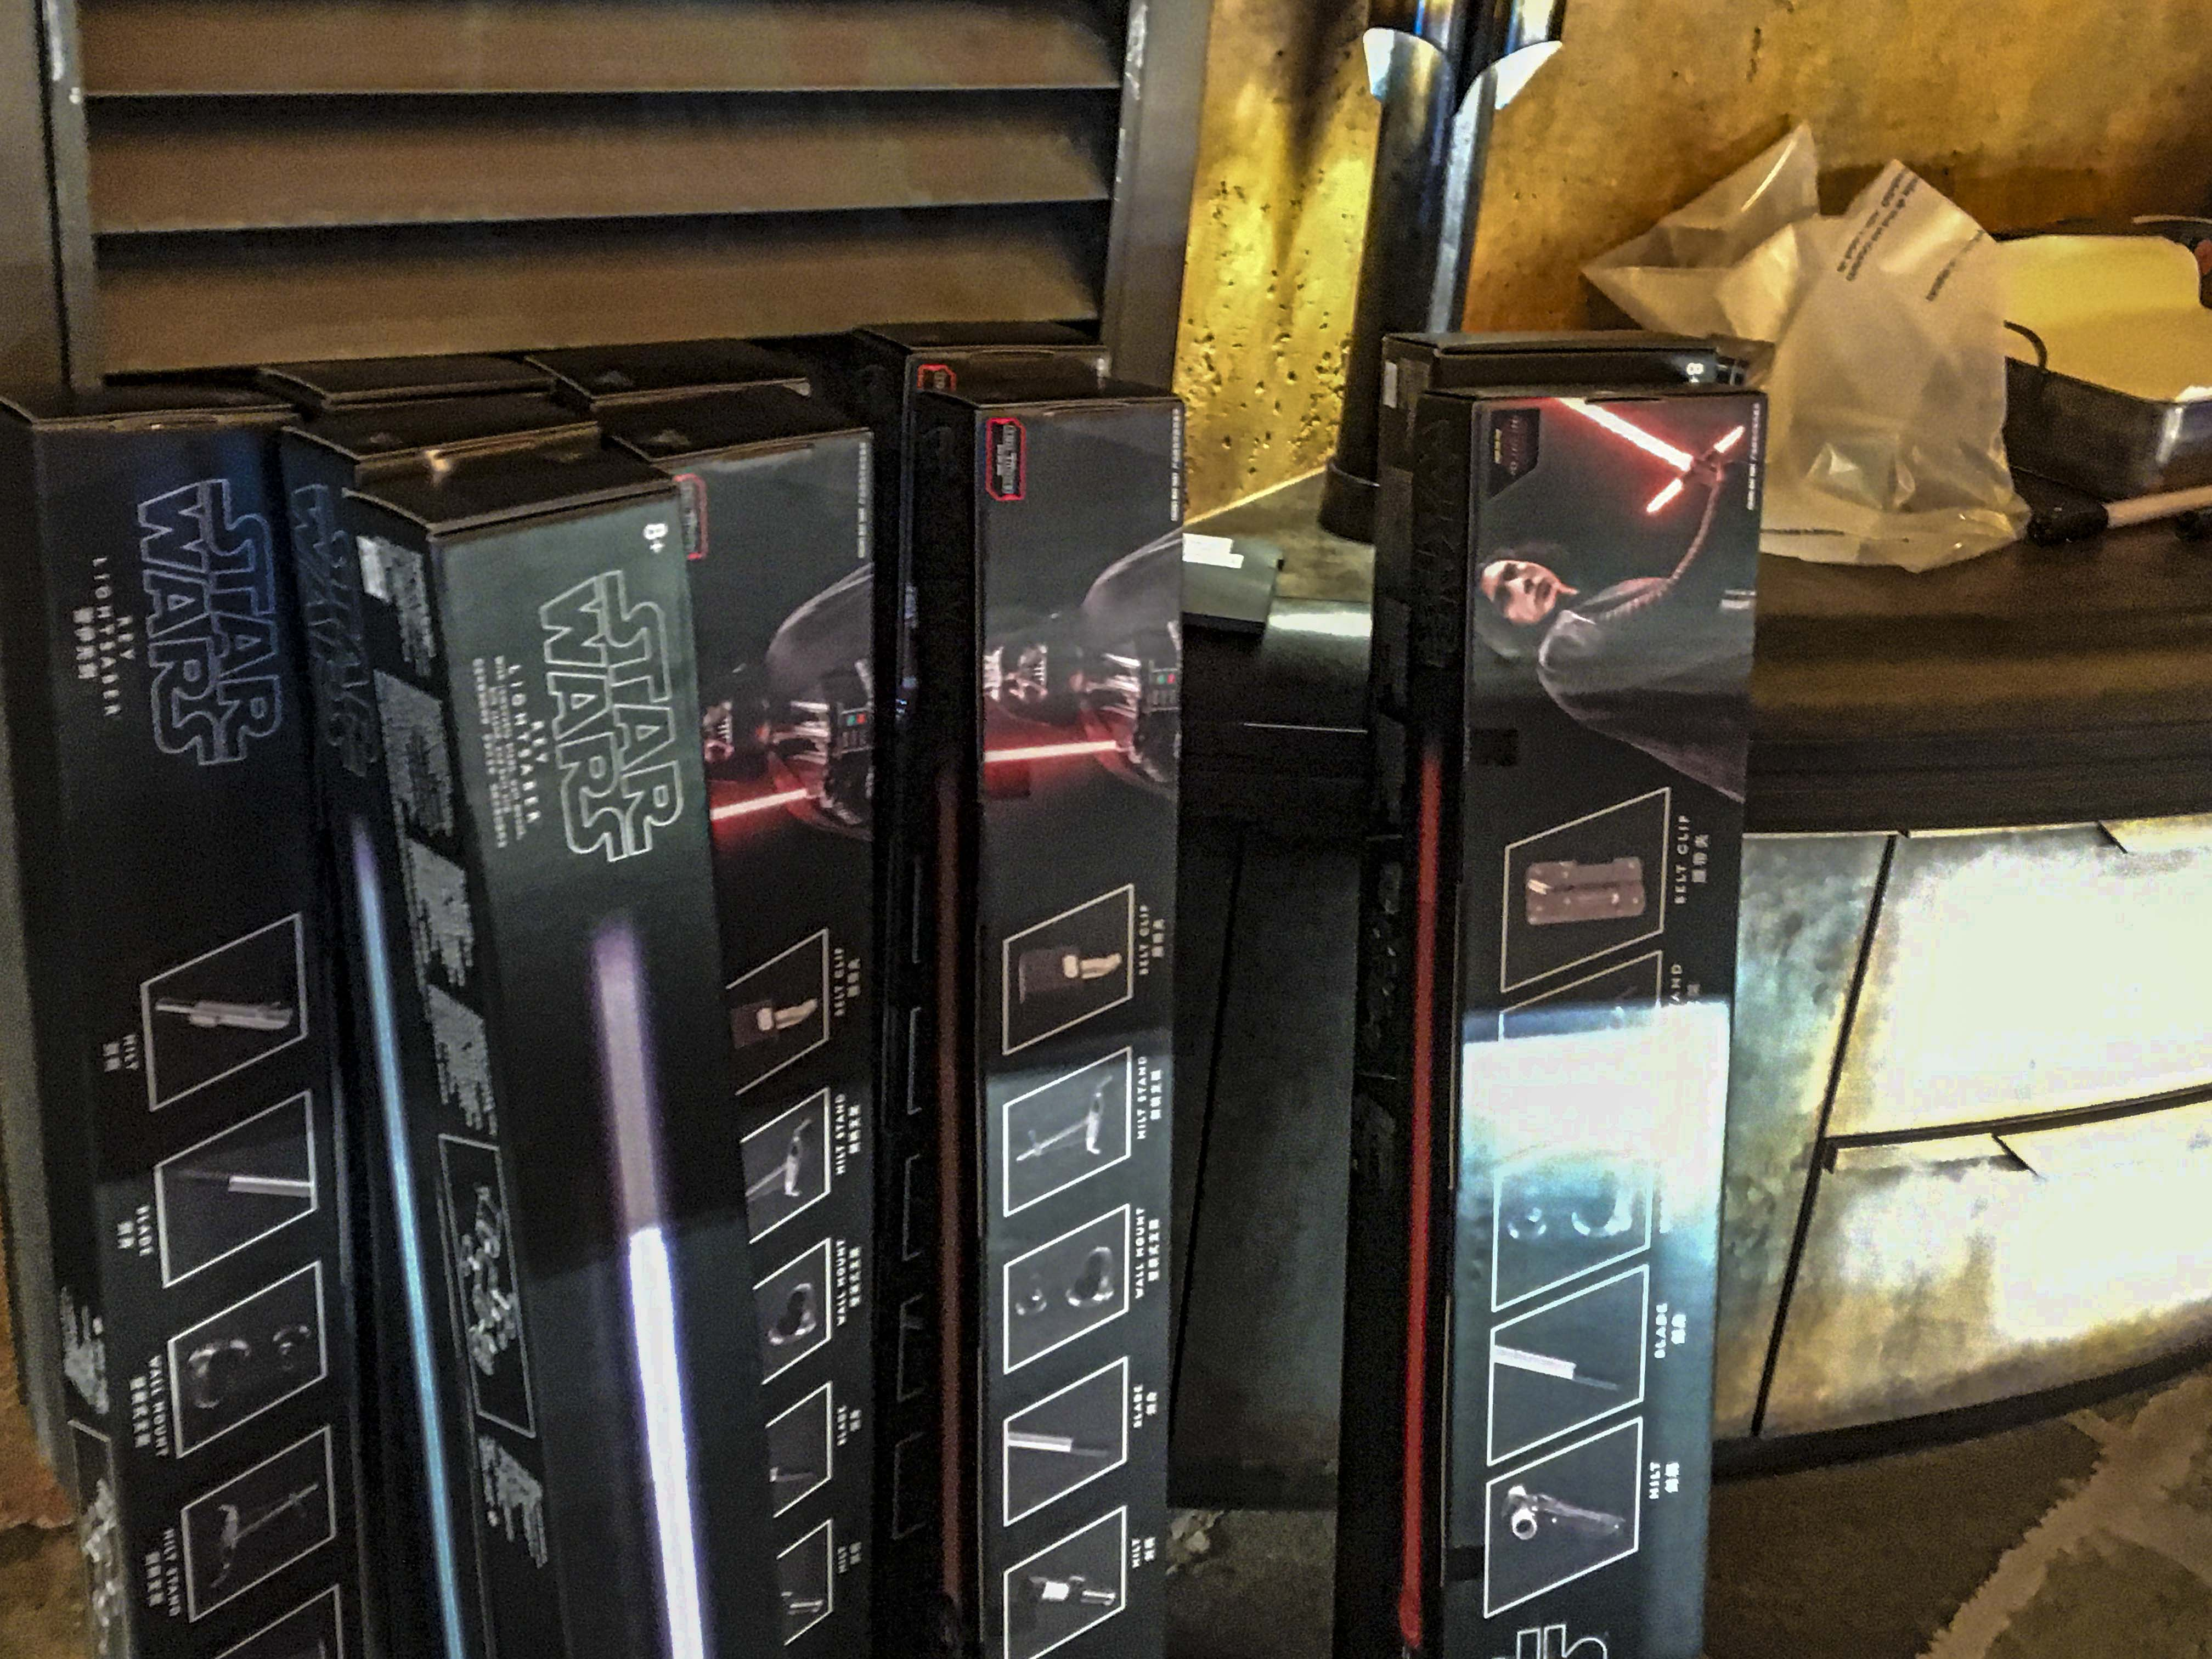 Star Wars: Galaxy's Edge Merchandise Selling Out Rapidly